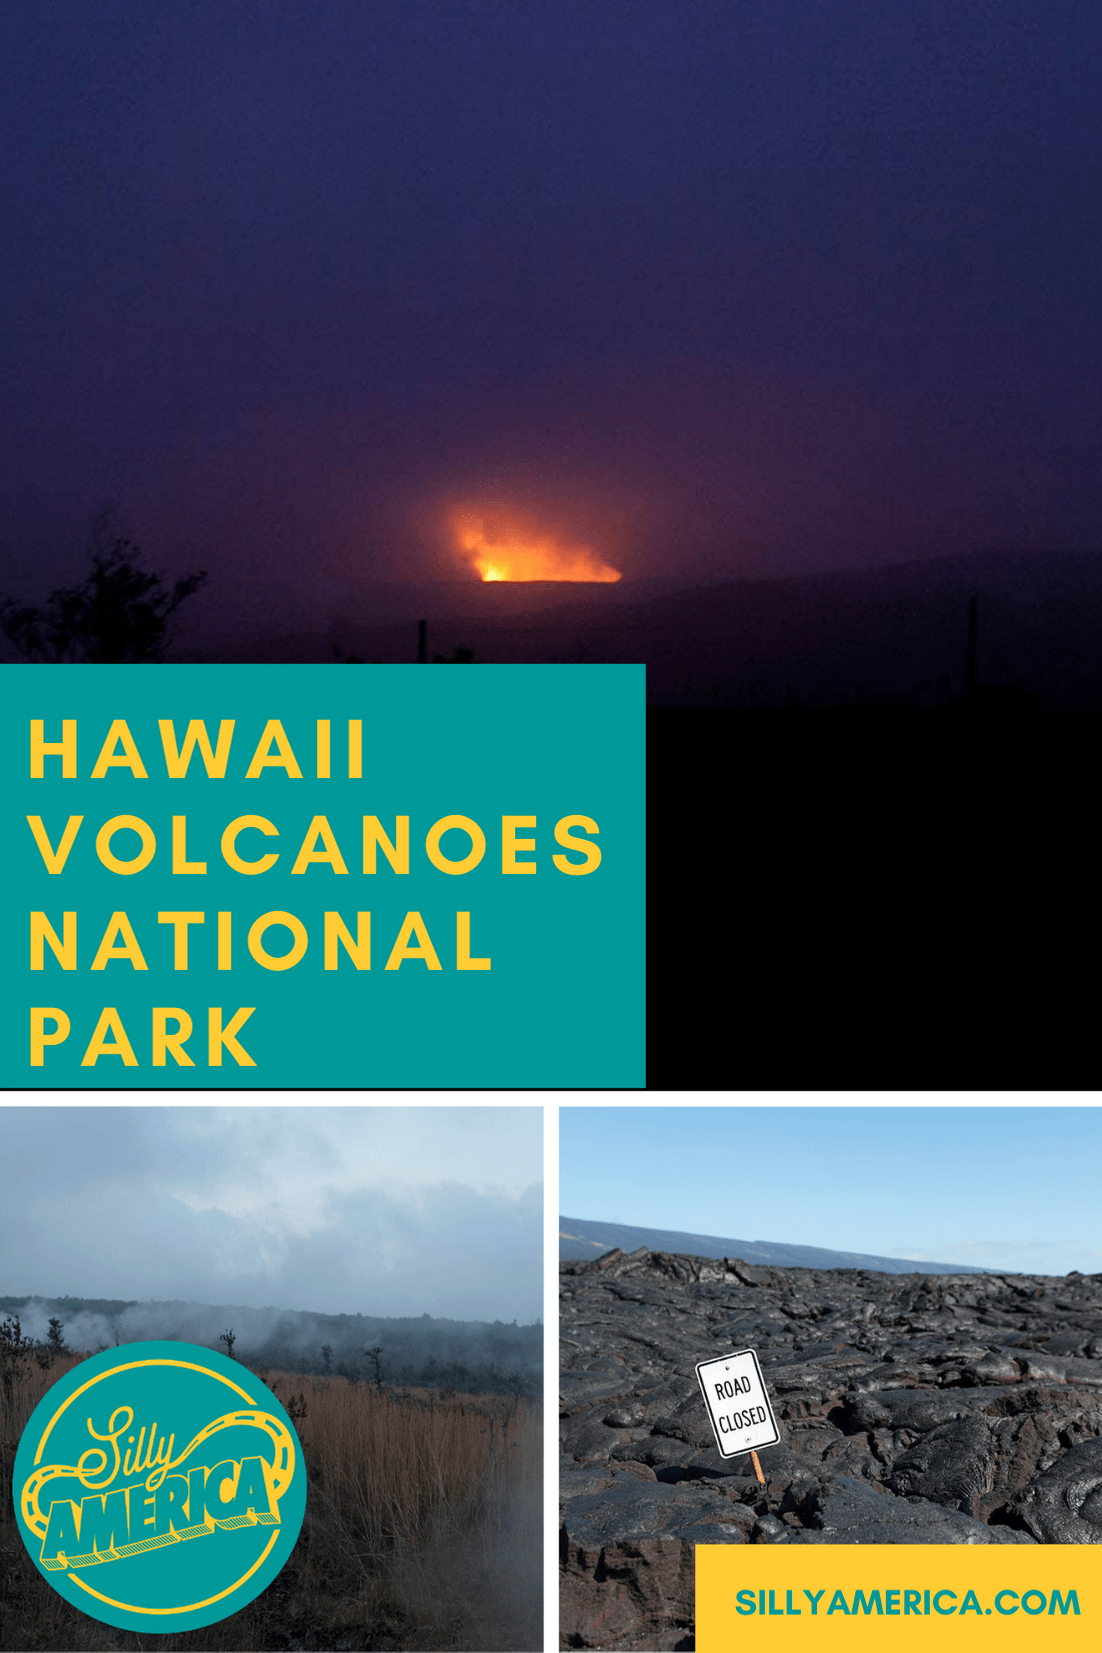 What to see at Hawaii Volcanoes National Park on the Big Island, including two of the world's most active volcanoes: Kīlauea and Mauna Loa. A must-see stop on a Big Island road trip in Hawaii. #HawaiiRoadsideAttractions #HawaiiRoadsideAttraction #RoadsideAttractions #RoadsideAttraction #RoadTrip #HawaiiRoadTrip #HawaiiBucketLists #BigIsland #HawaiiRoadTripMap #HawaiiRoadTripItinerary #HawaiiRoadTripBucketList